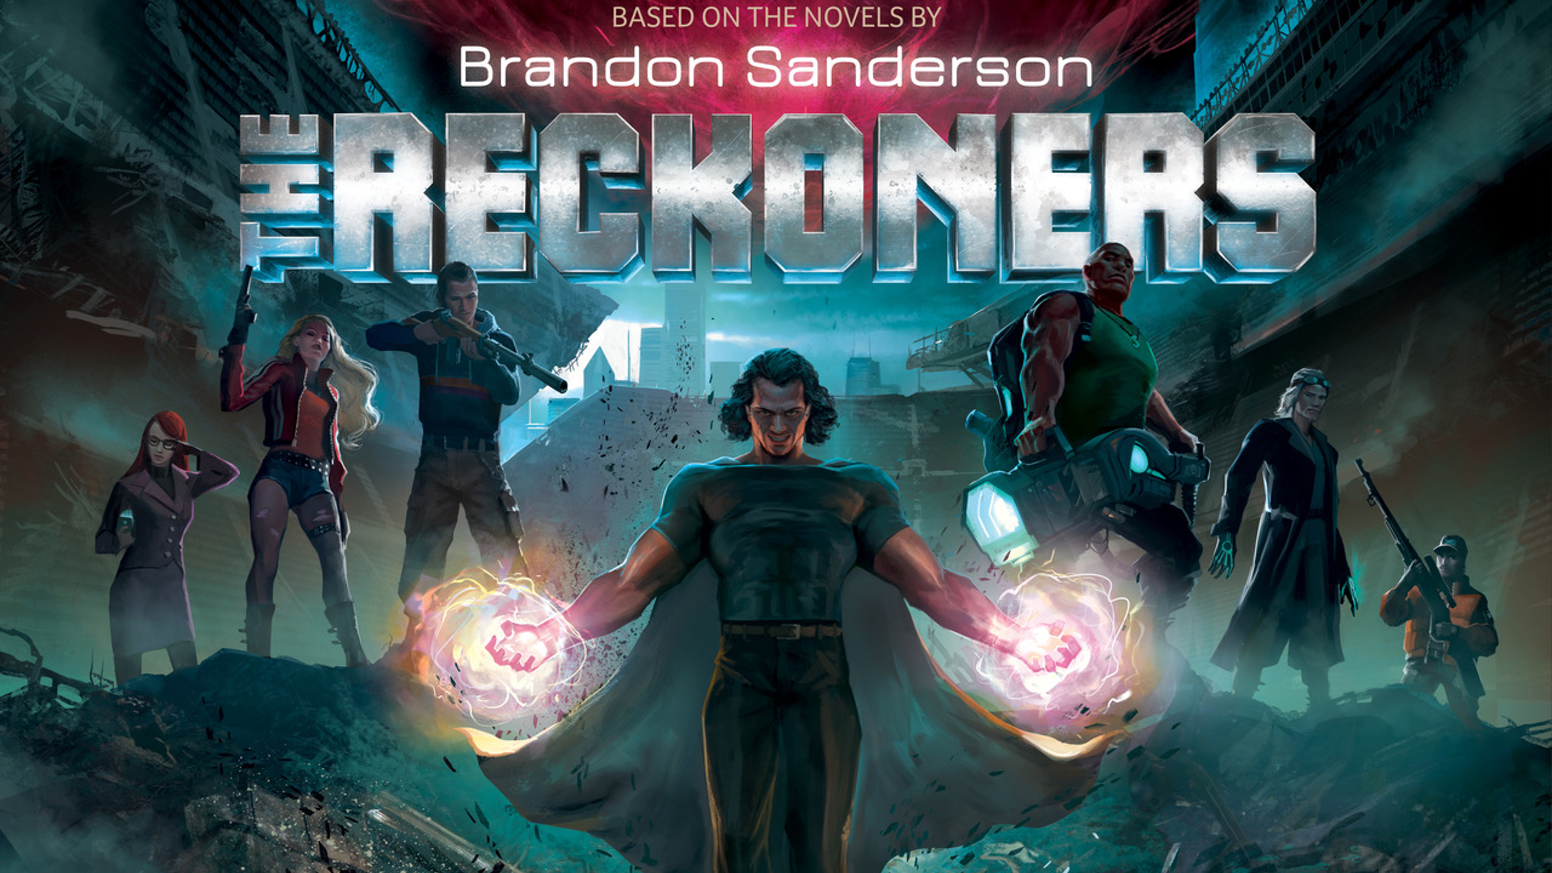 A cooperative board game based on the books by Brandon Sanderson where you must defend the city of Newcago and defeat Steelheart!